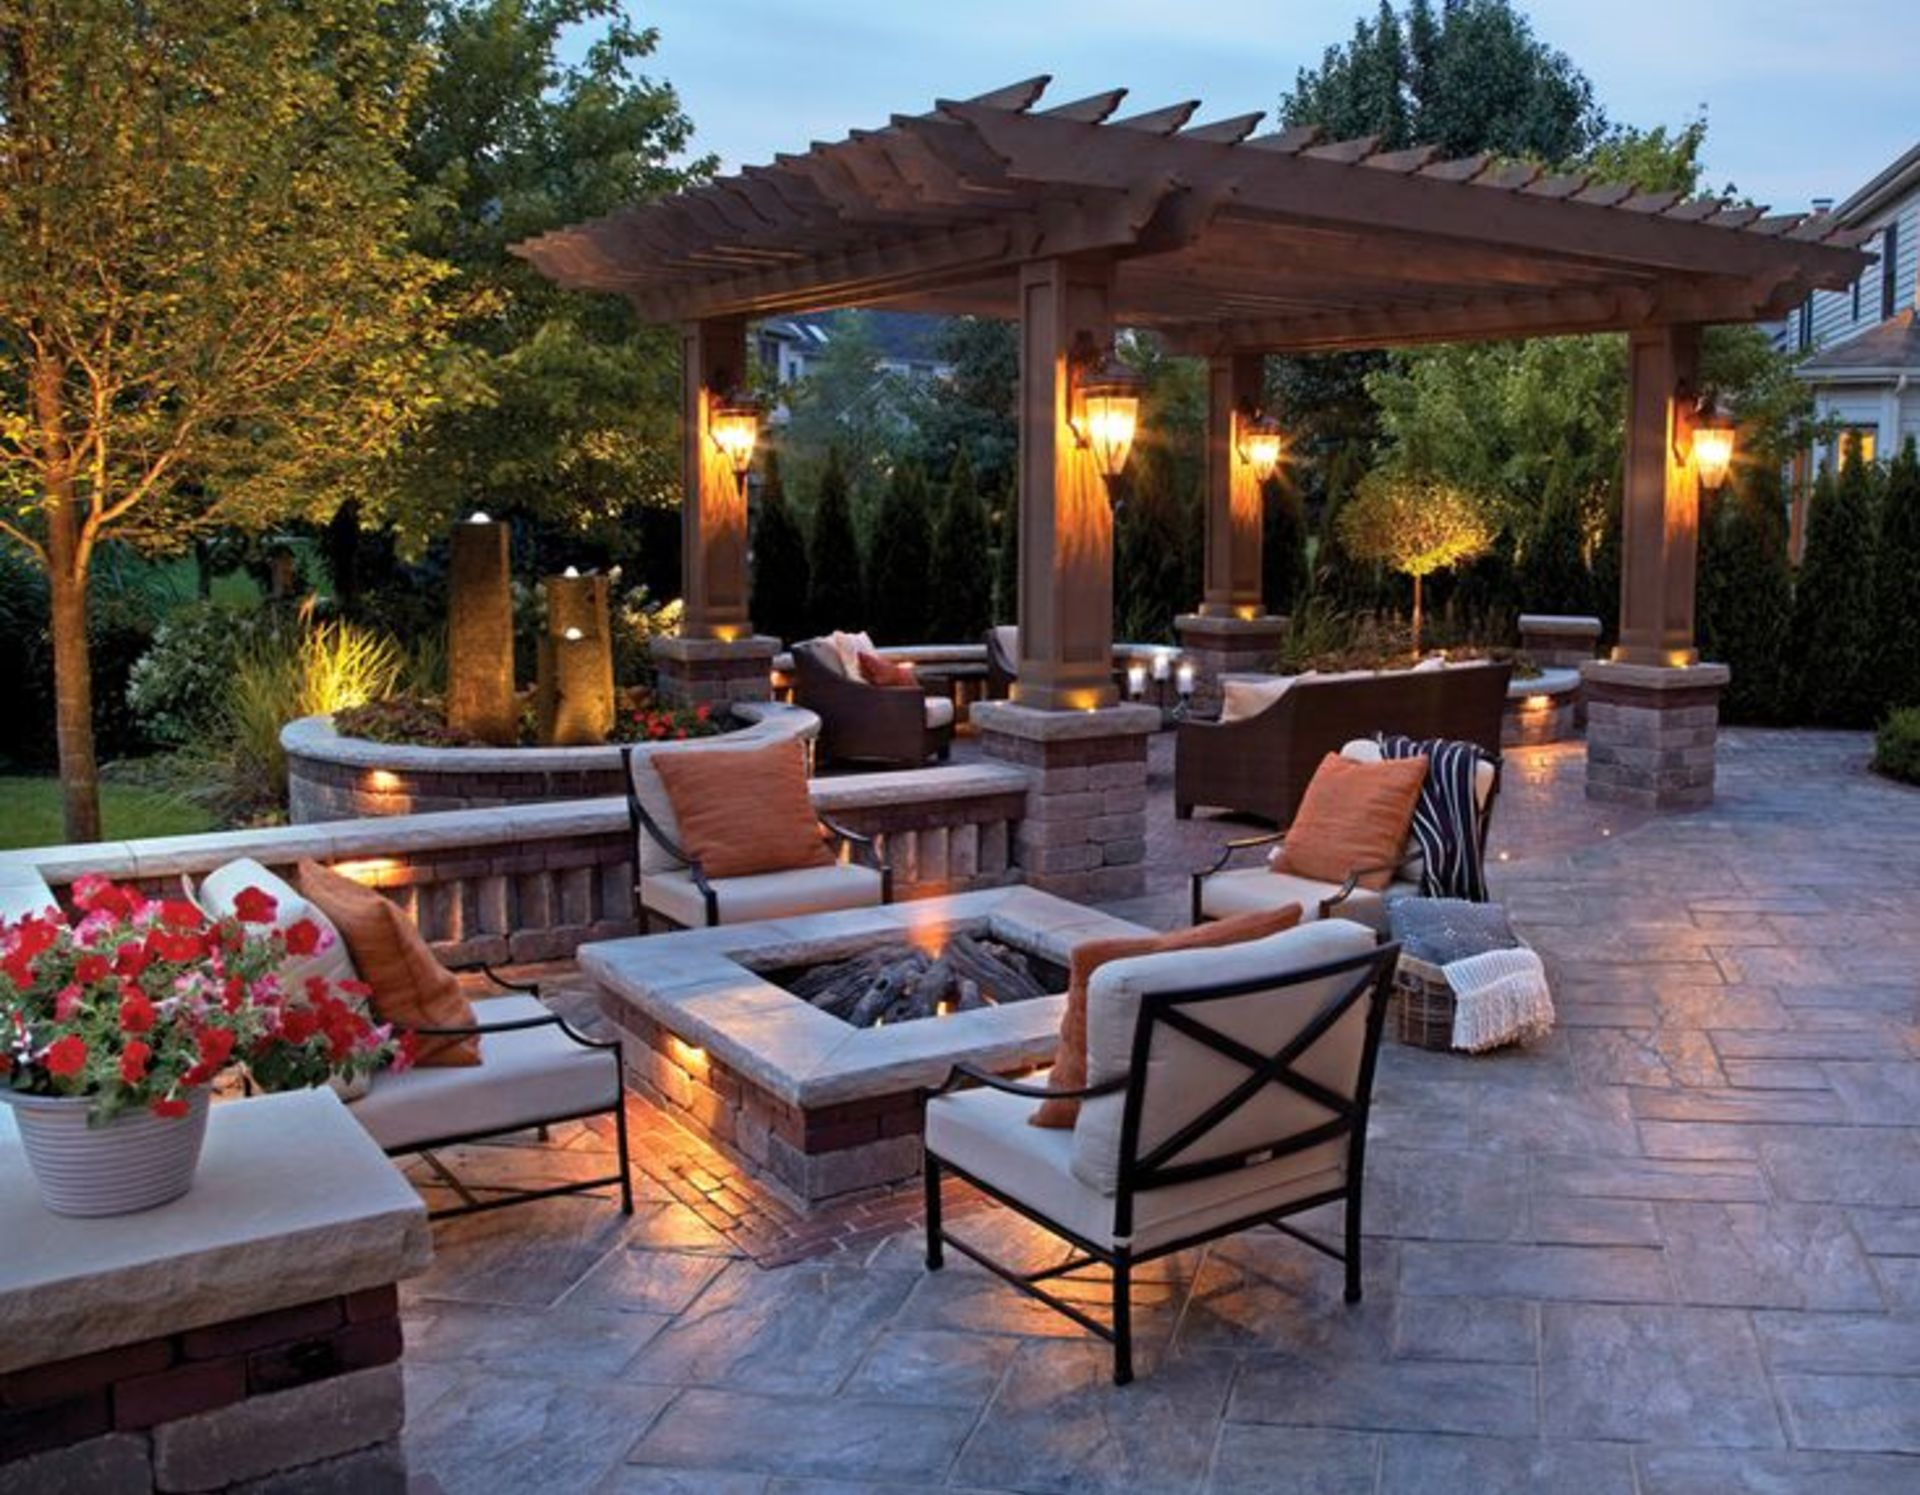 Three Ways to Add Livable Square Footage to Your Backyard